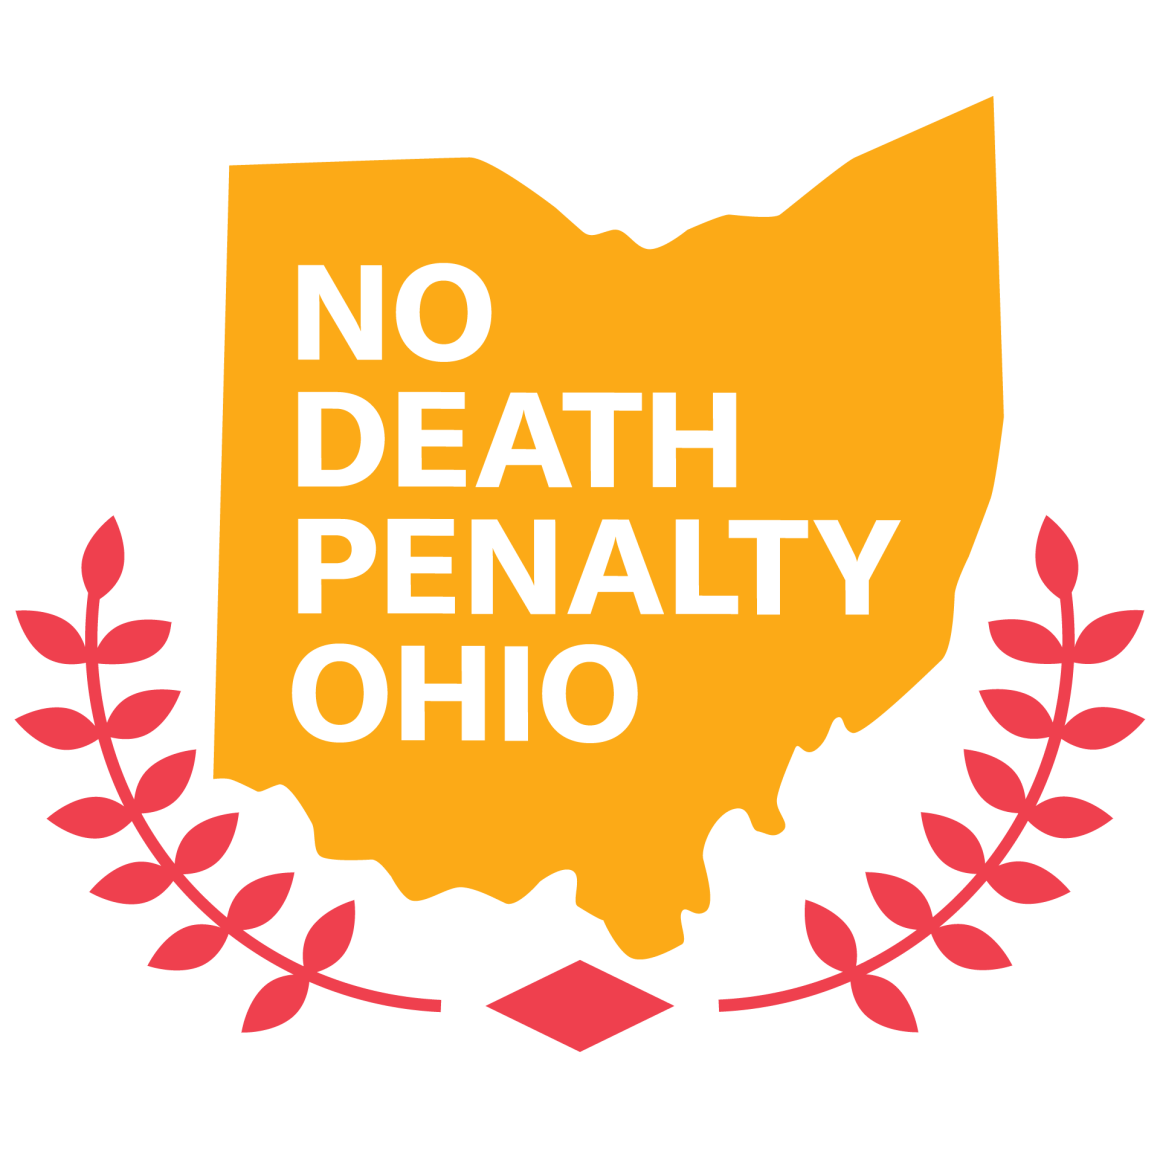 No Death Penalty Ohio in white font on an orange, solid color state of Ohio with red peace leave branches on the sides of the state